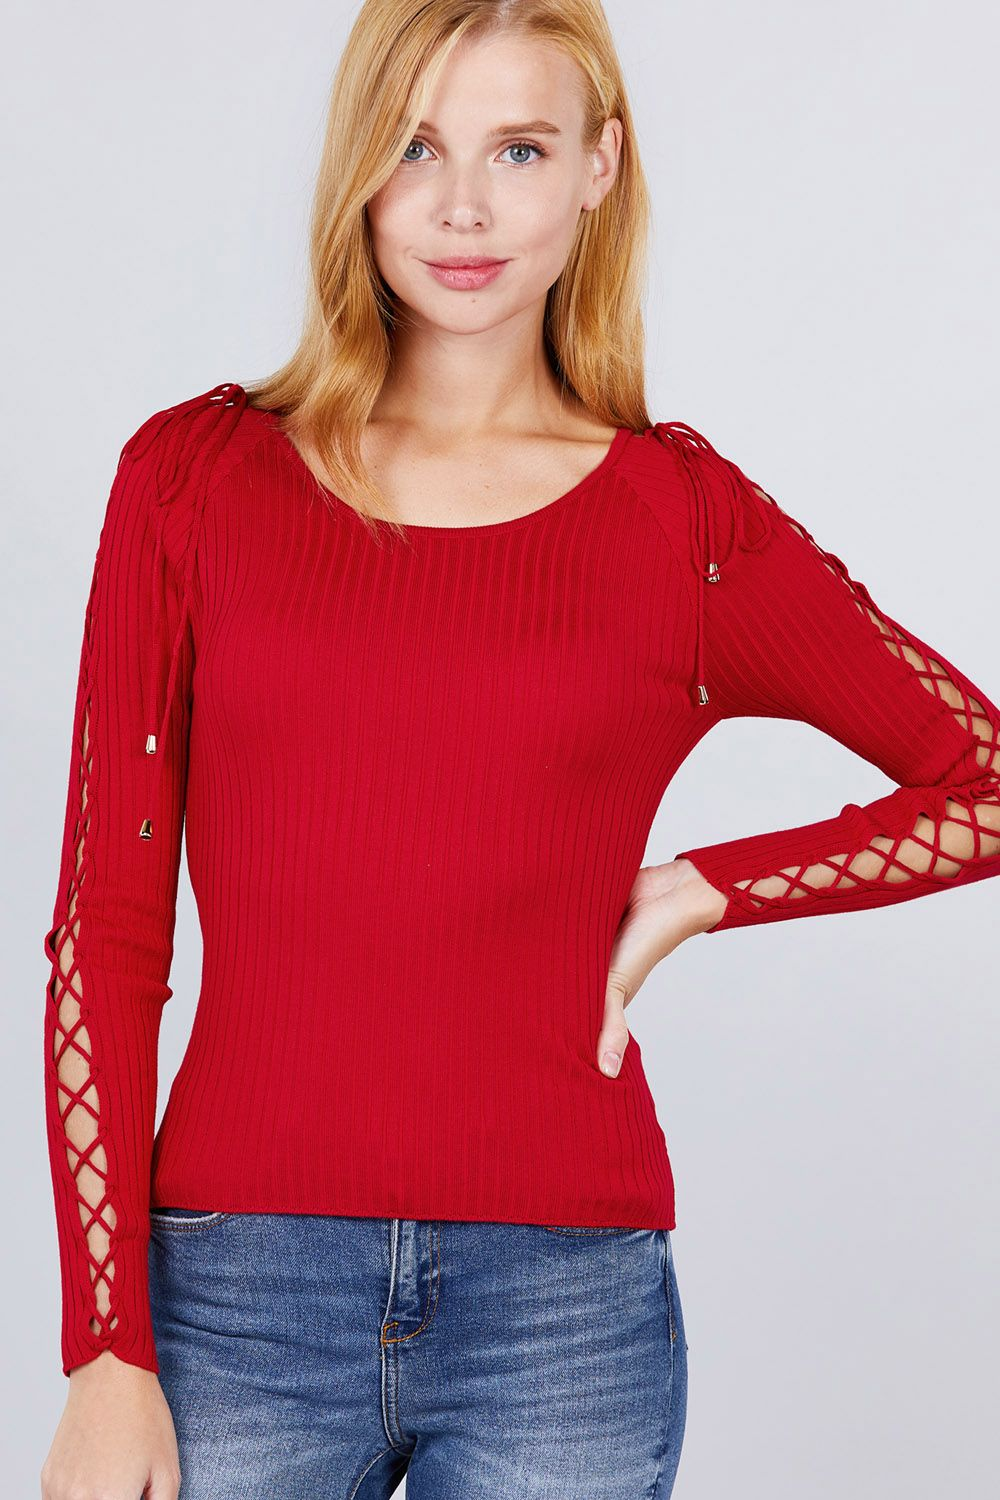 Long Sleeve W/strappy Detail Round Neck Rib Sweater Top - Absolute Fashion 2020